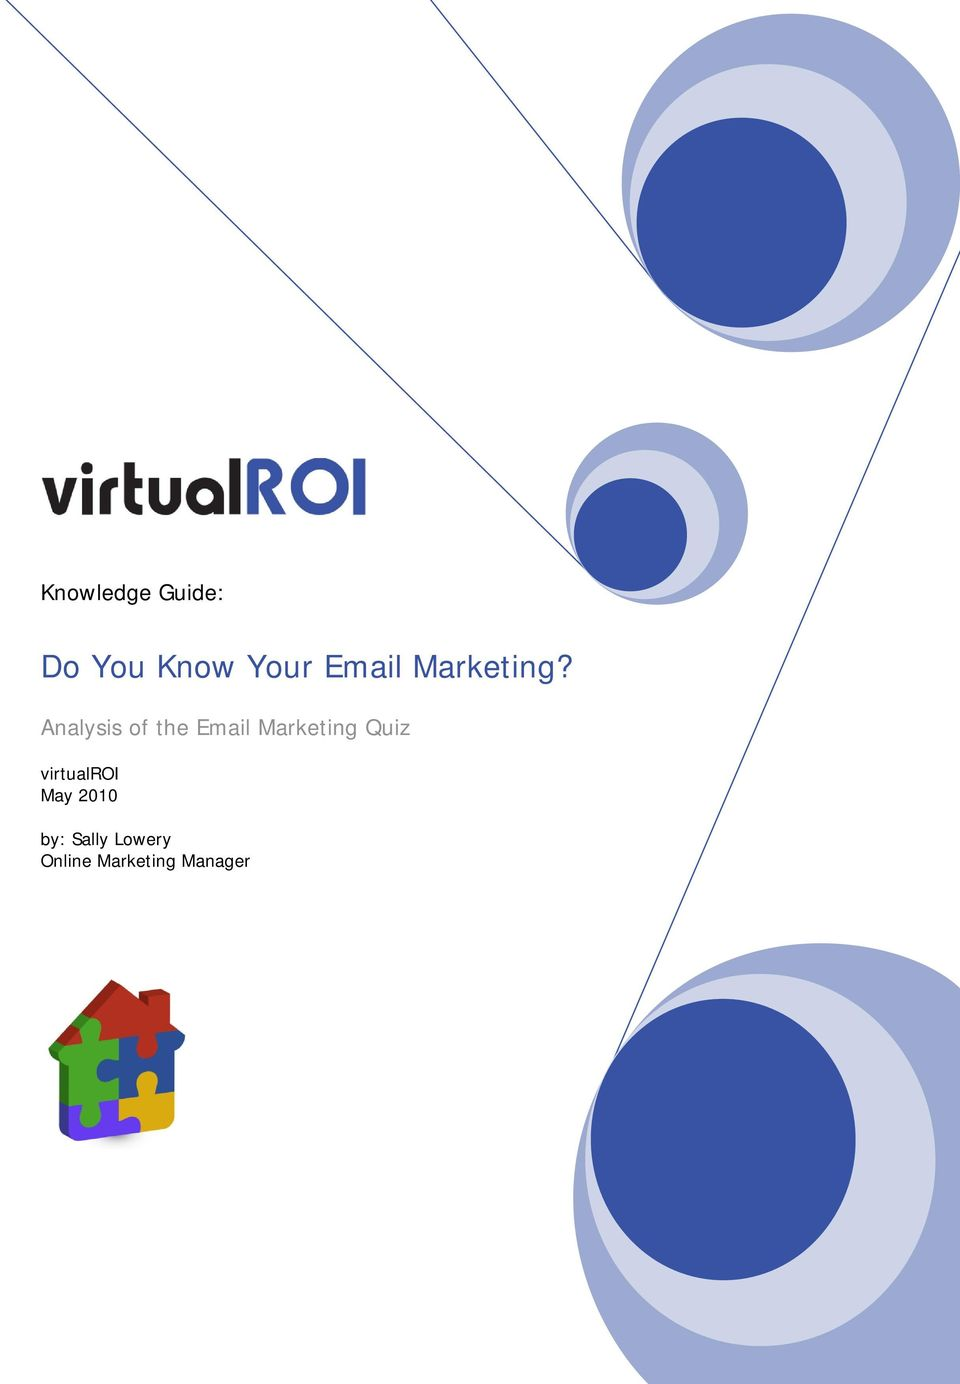 Analysis of the Email Marketing Quiz